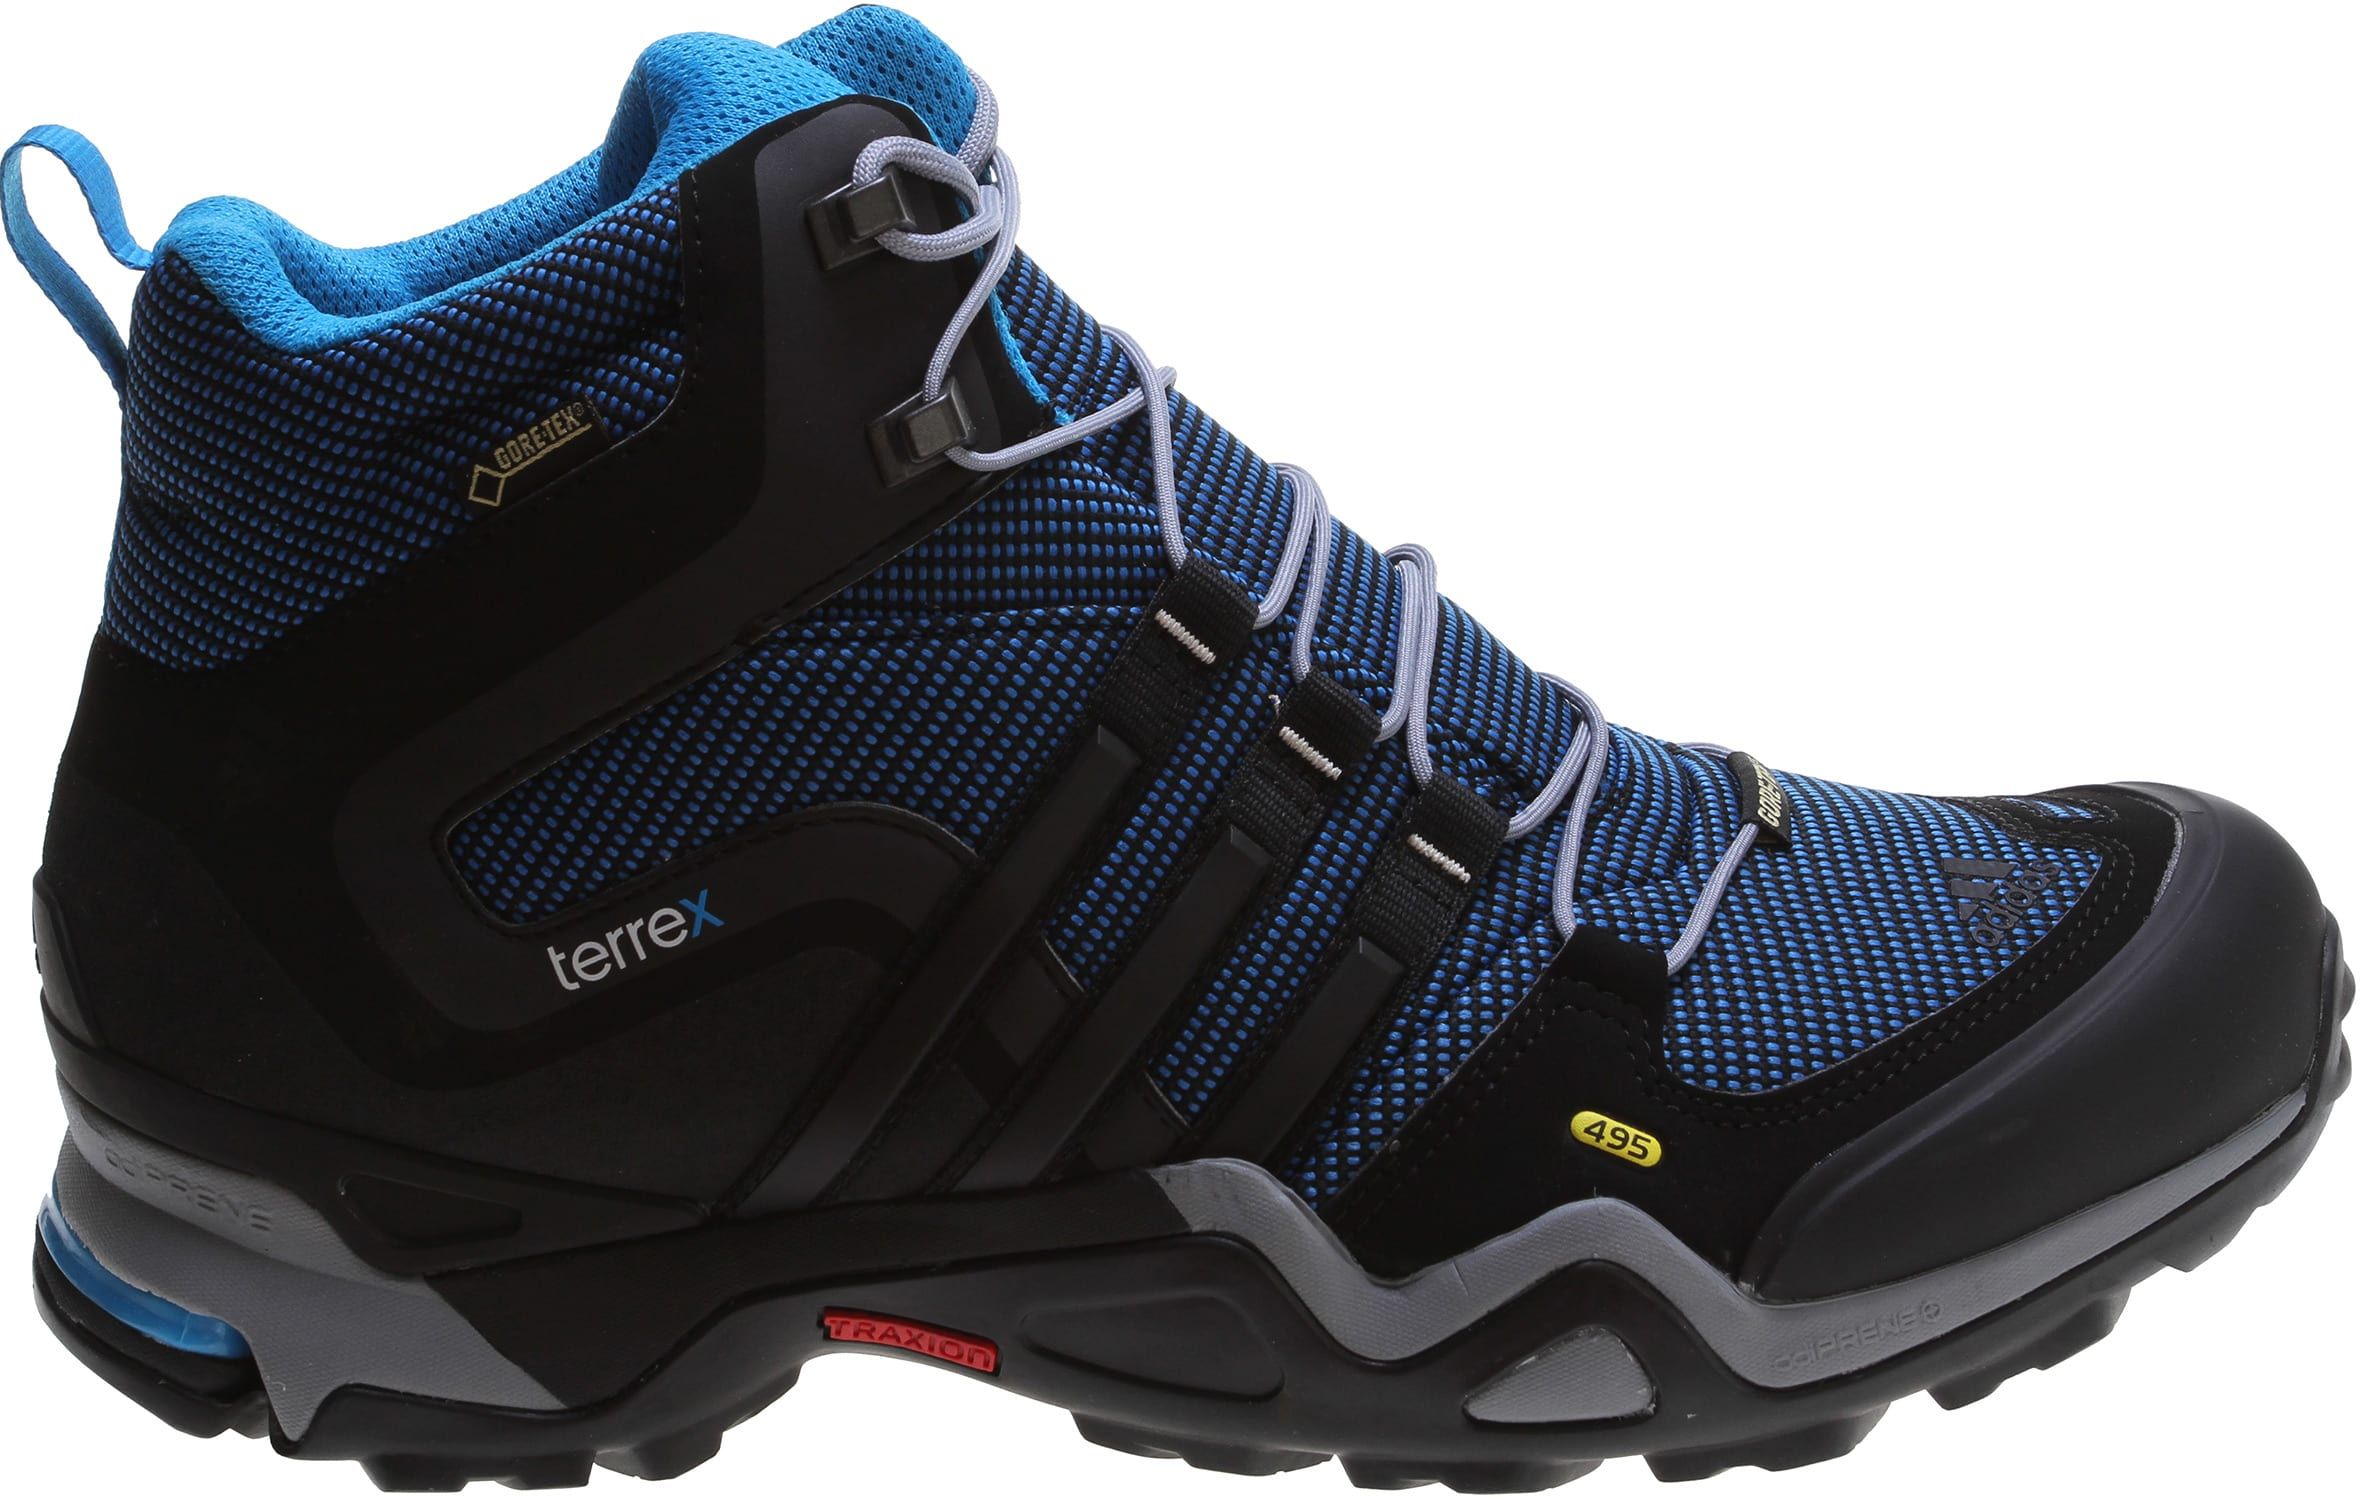 adidas terrex fast x high gtx hiking shoes. Black Bedroom Furniture Sets. Home Design Ideas